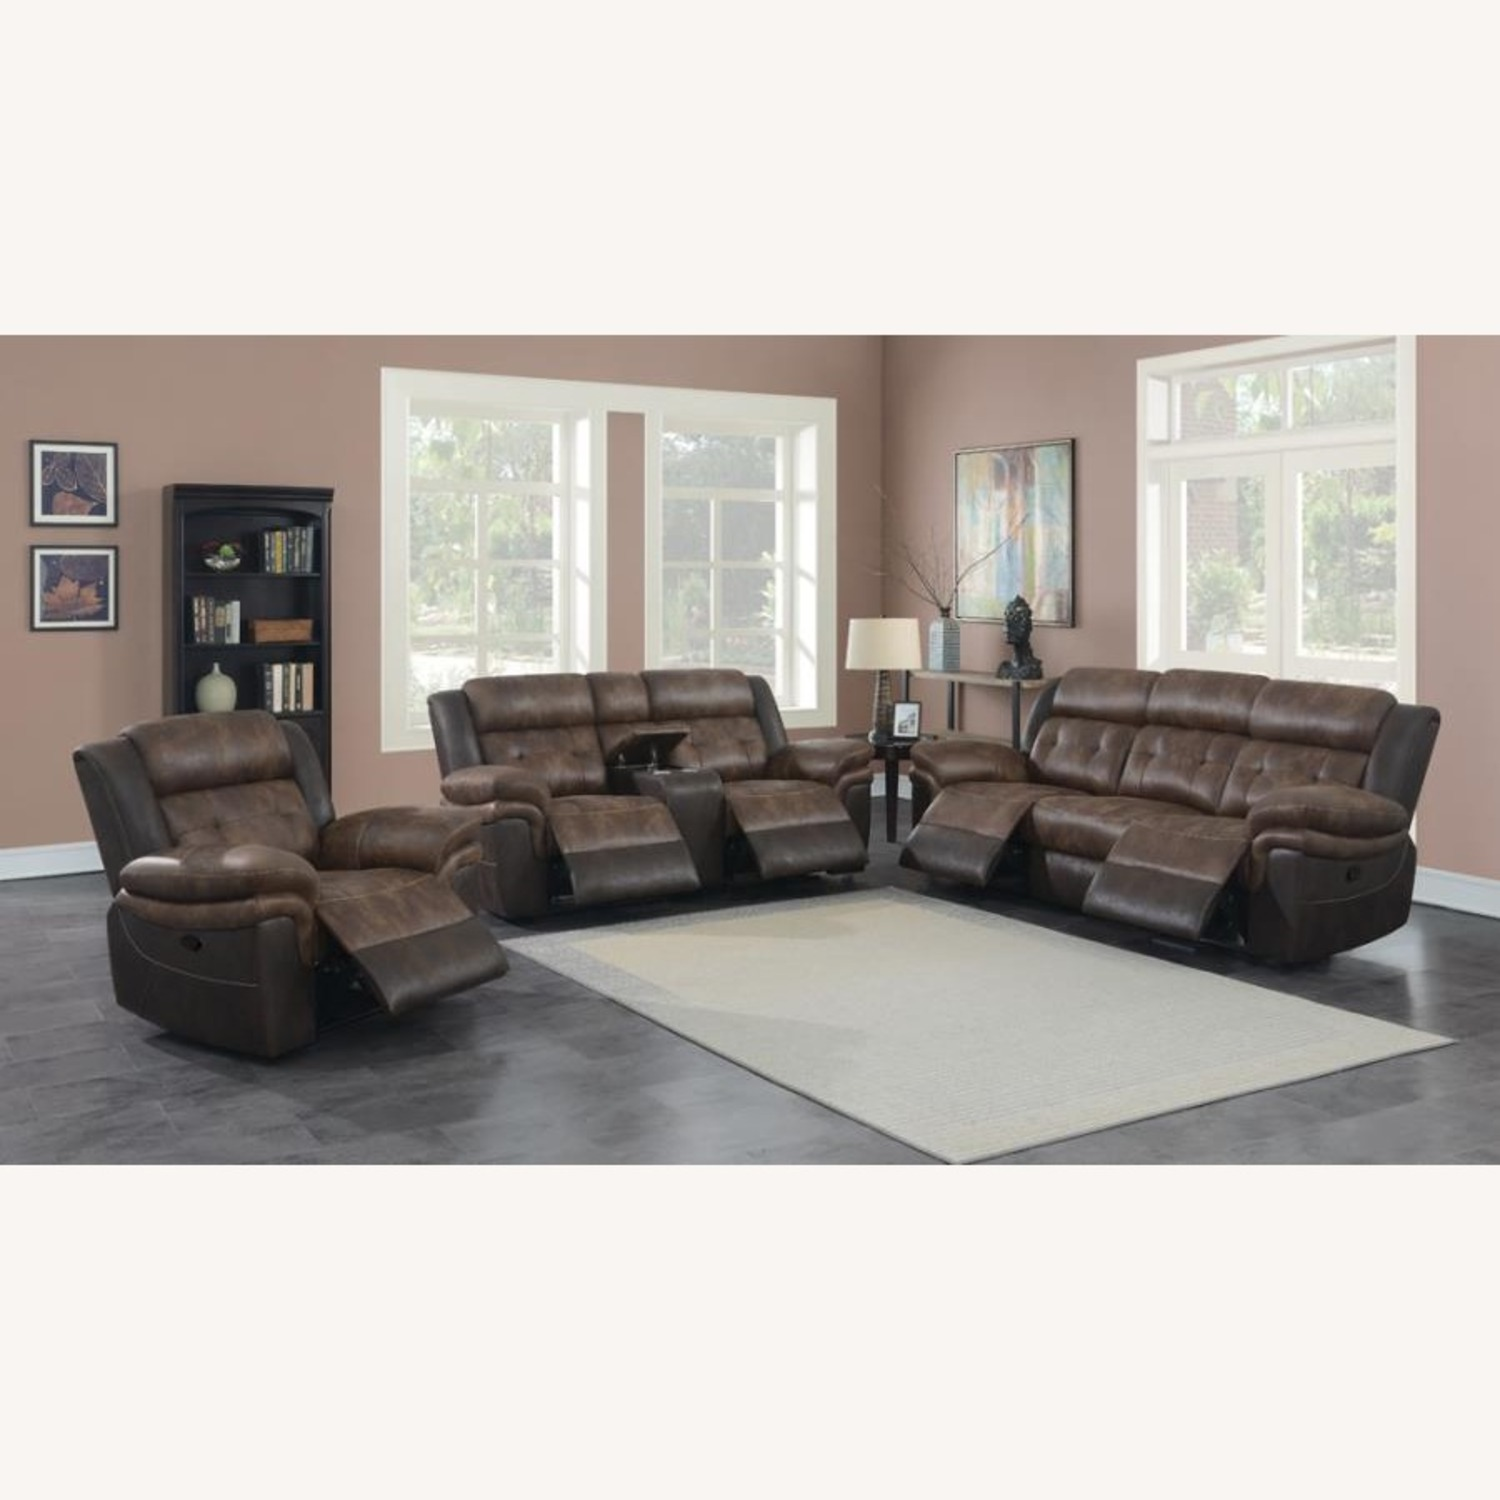 Recliner In Chocolate & Dark Brown Upholstery - image-8